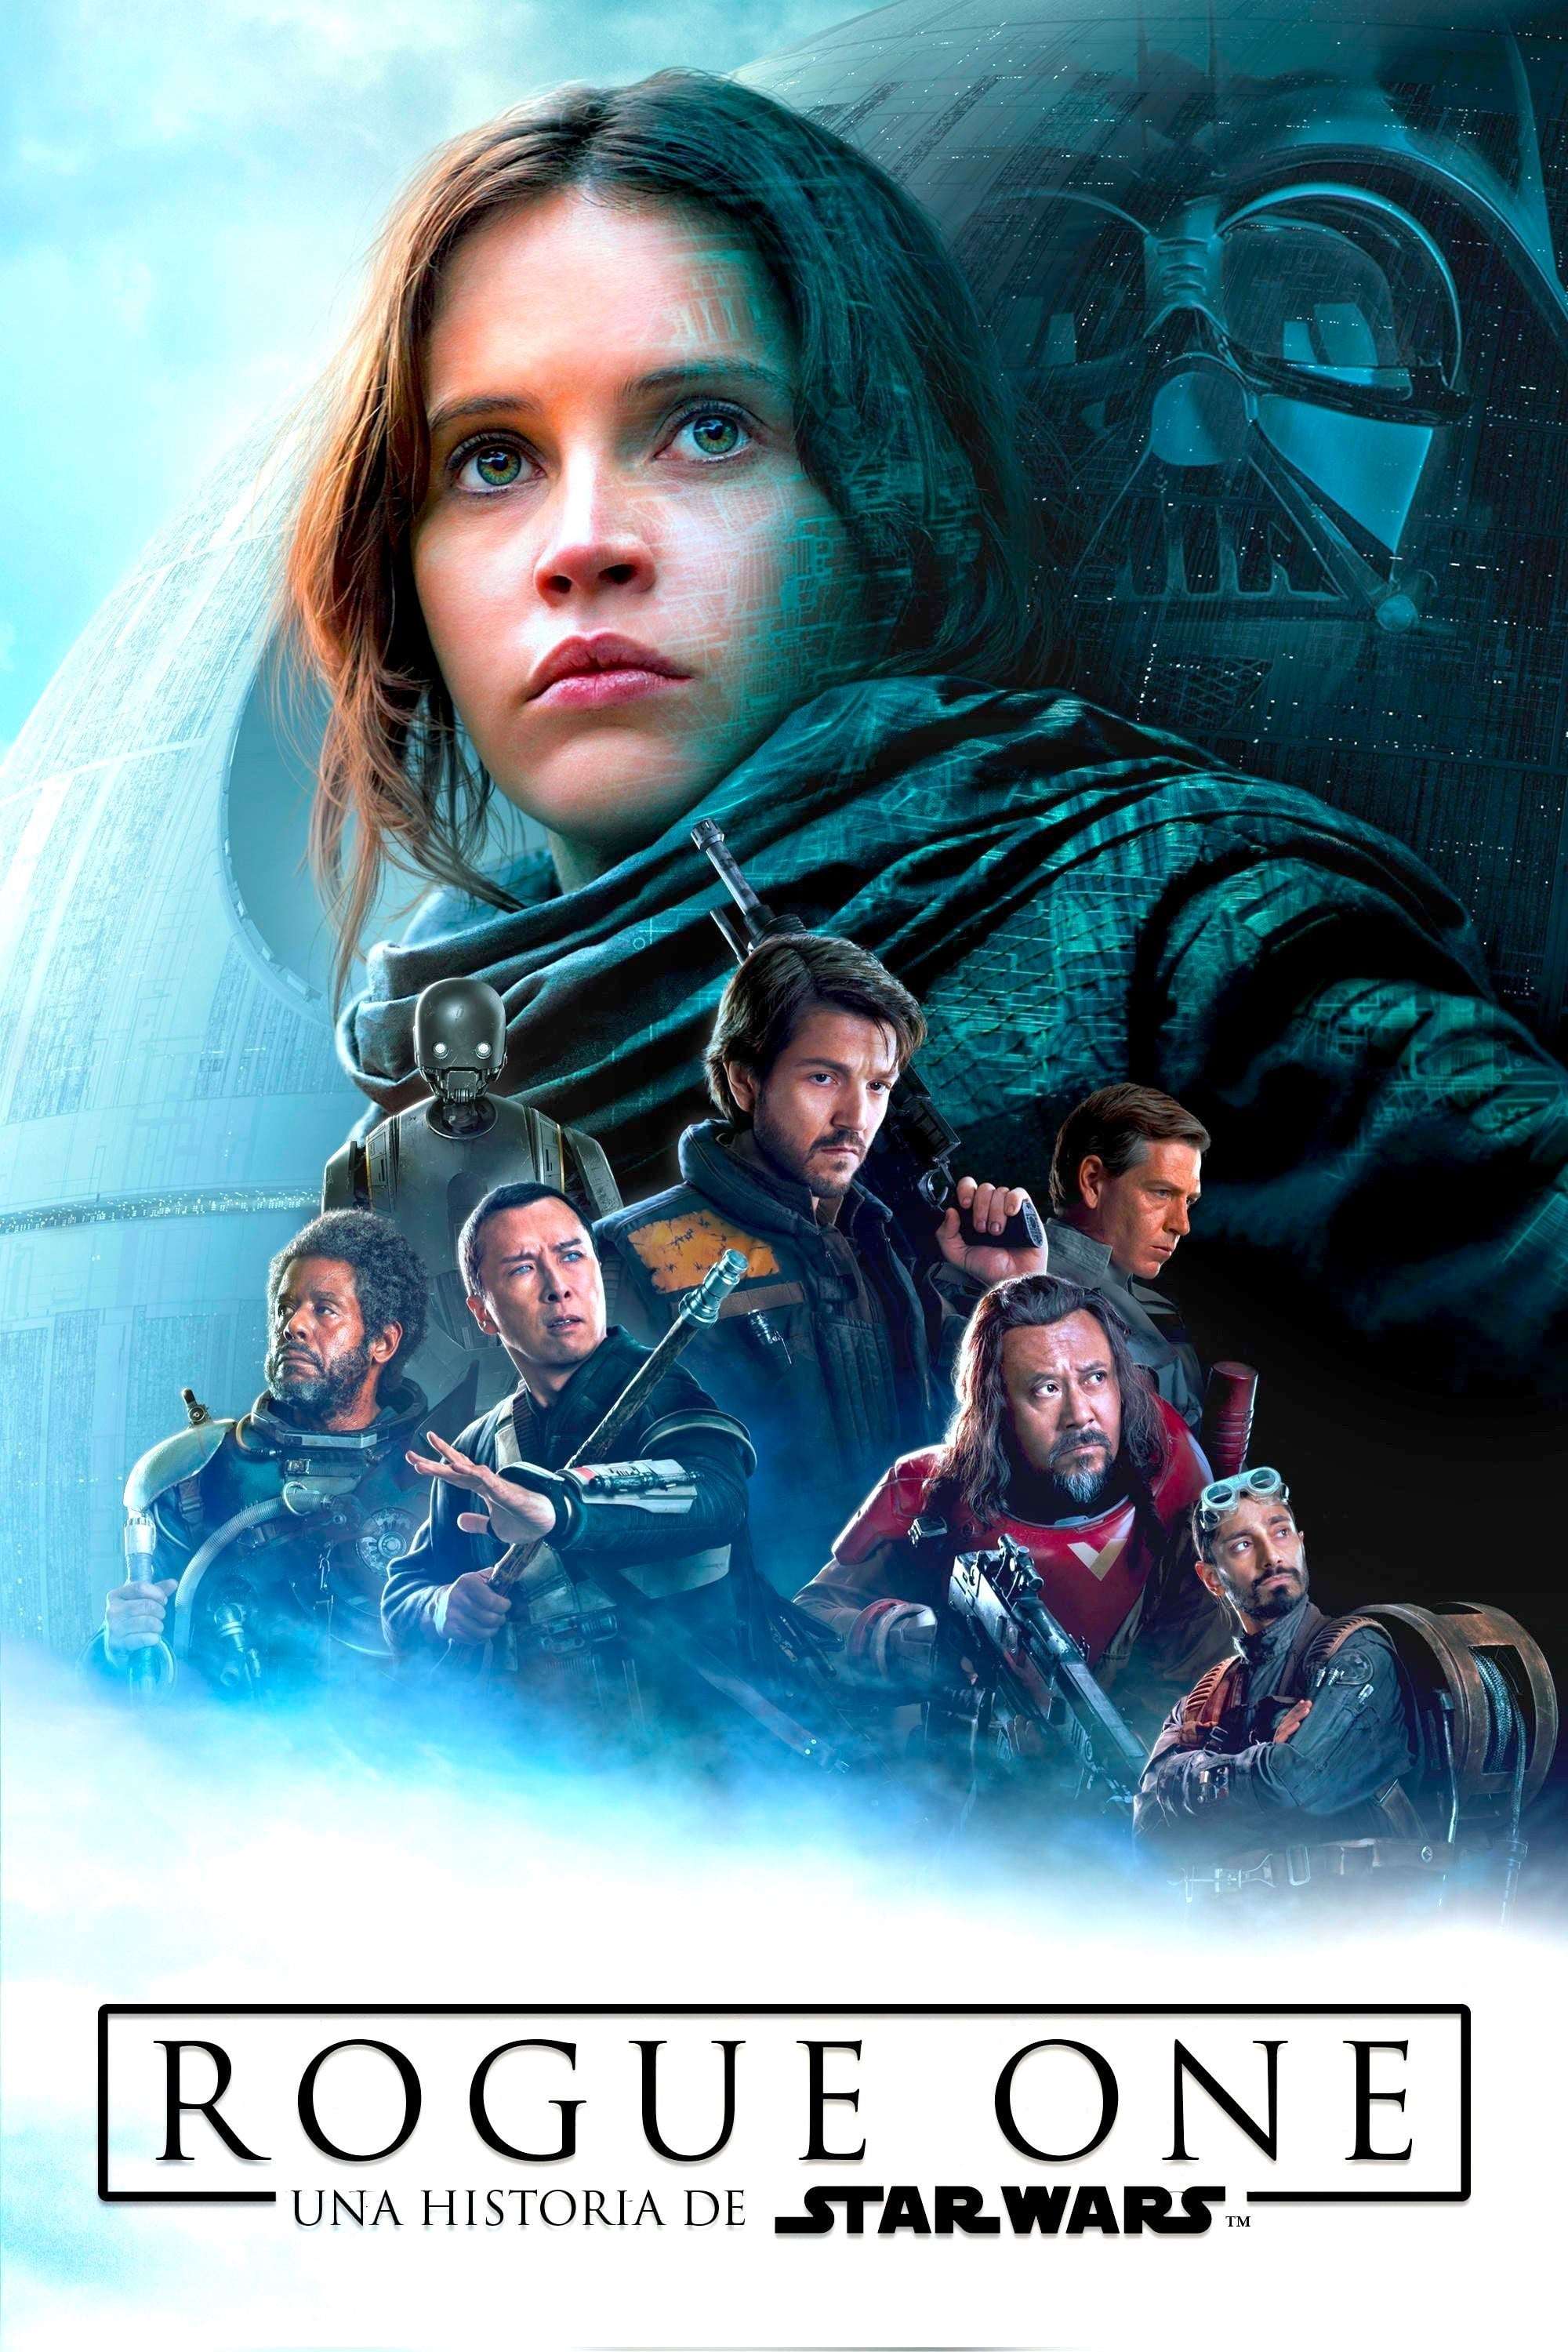 Poster and image movie Film Rogue One: O poveste Star Wars - Rogue One: O poveste Star Wars - Rogue One: A Star Wars Story - Rogue One -  2016